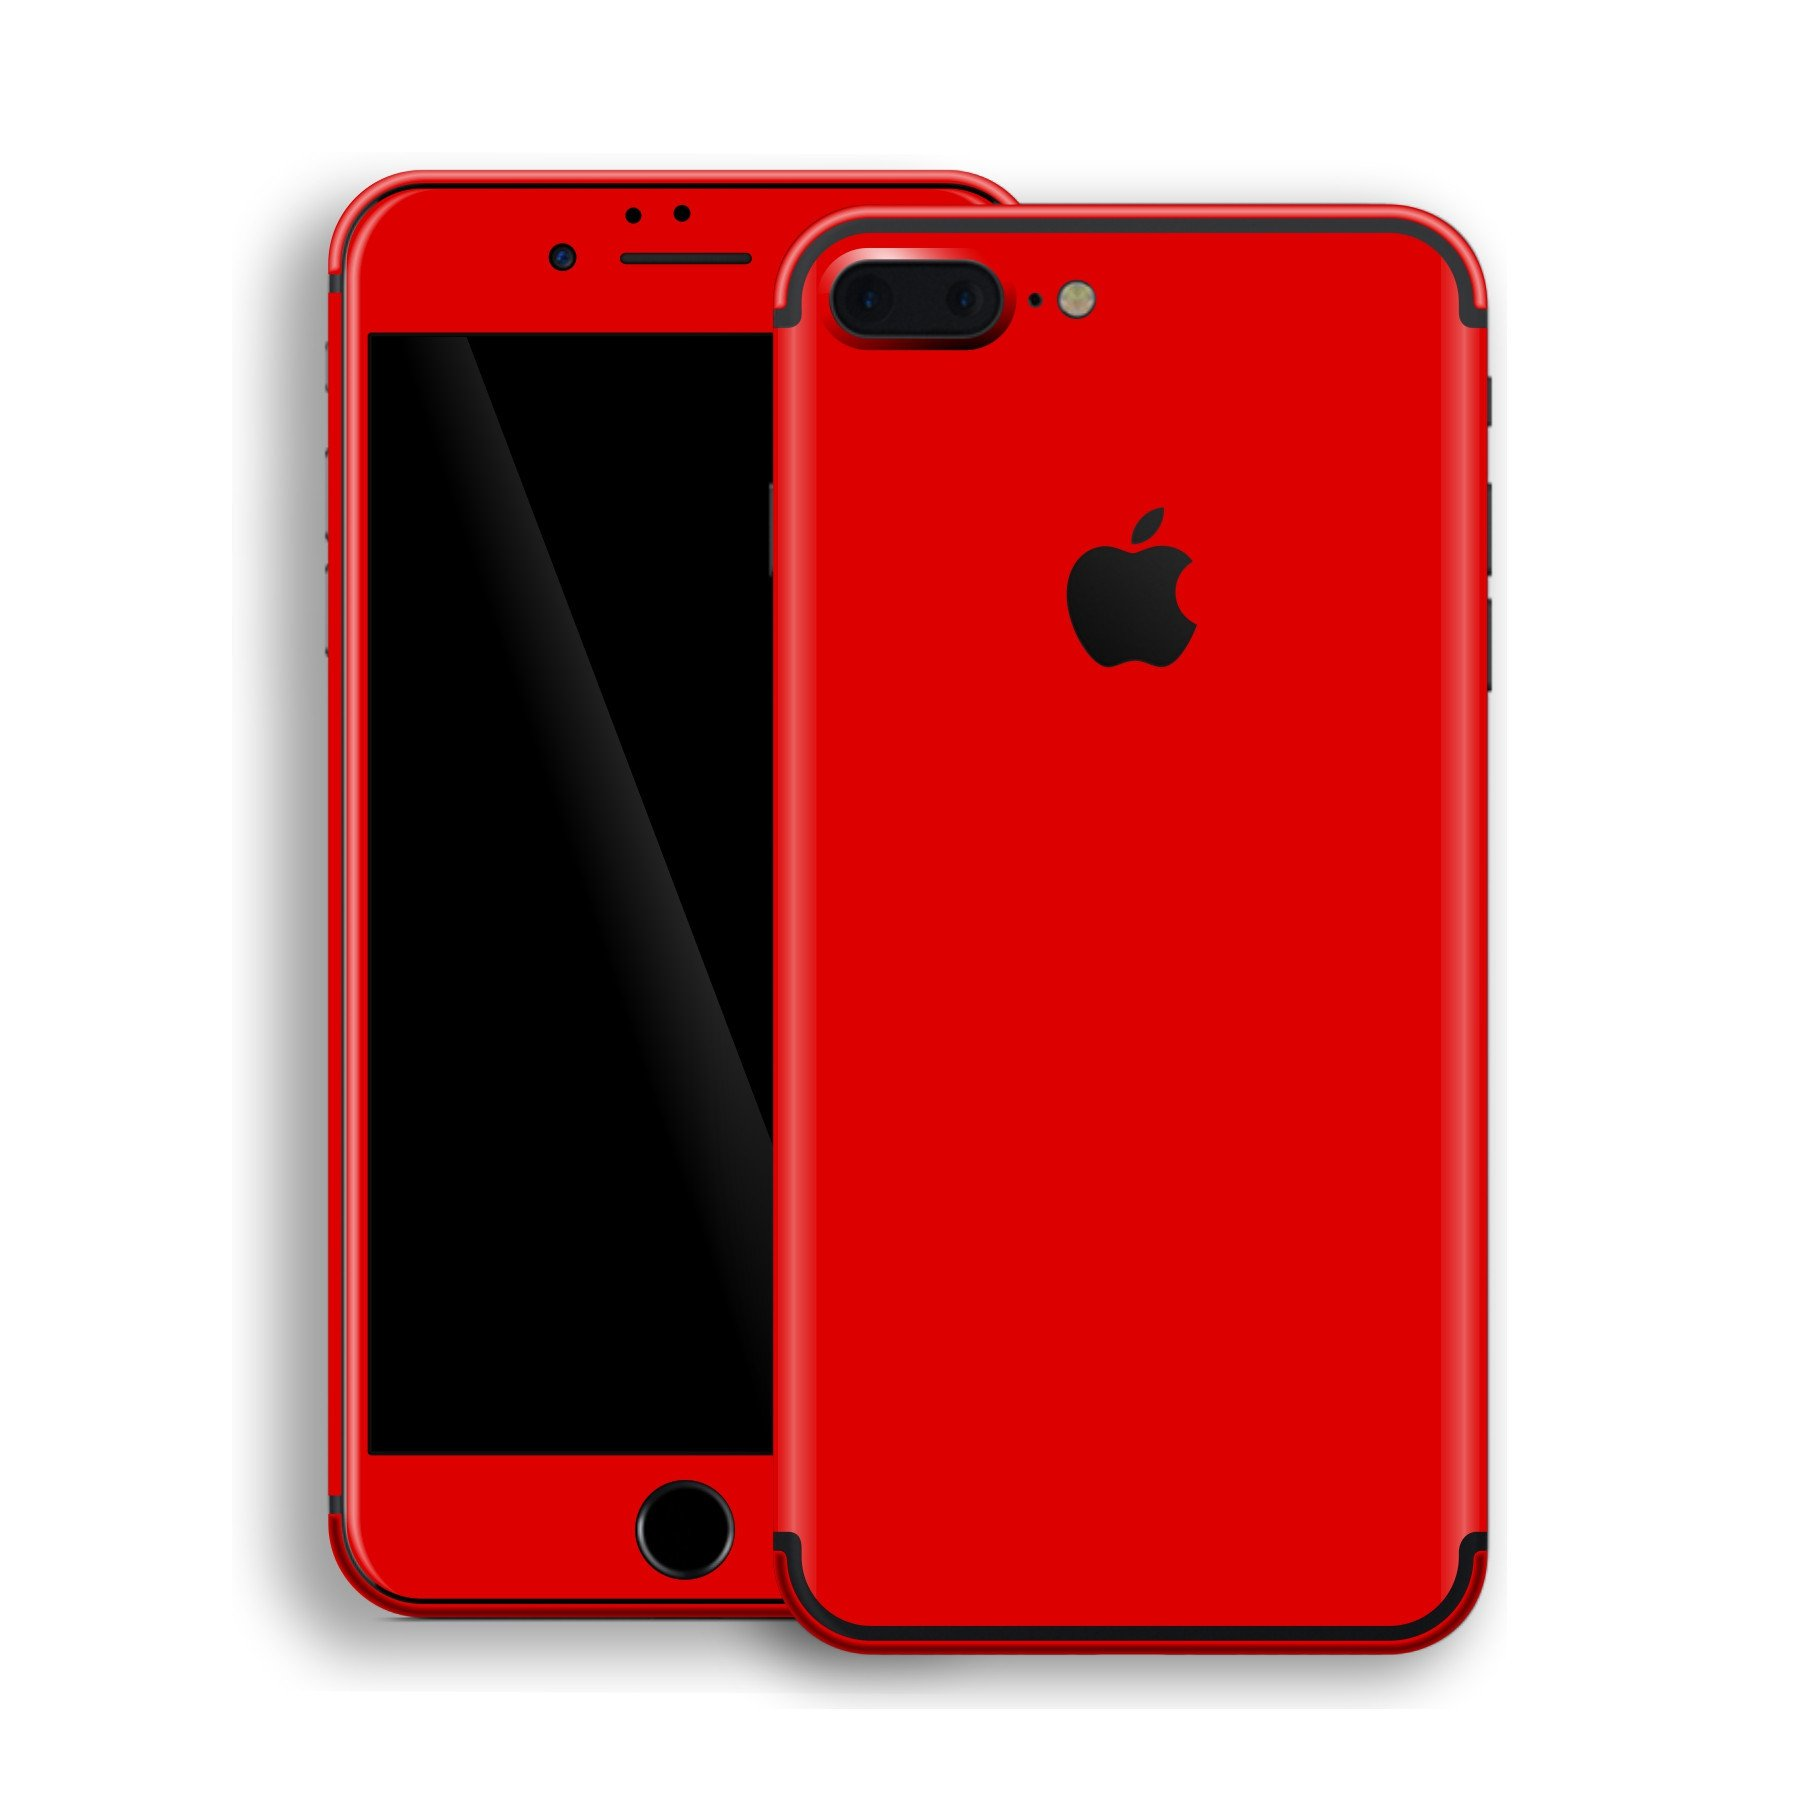 iPhone 7 Plus Bright Red Glossy Gloss Finish Skin, Decal, Wrap, Protector, Cover by EasySkinz | EasySkinz.com